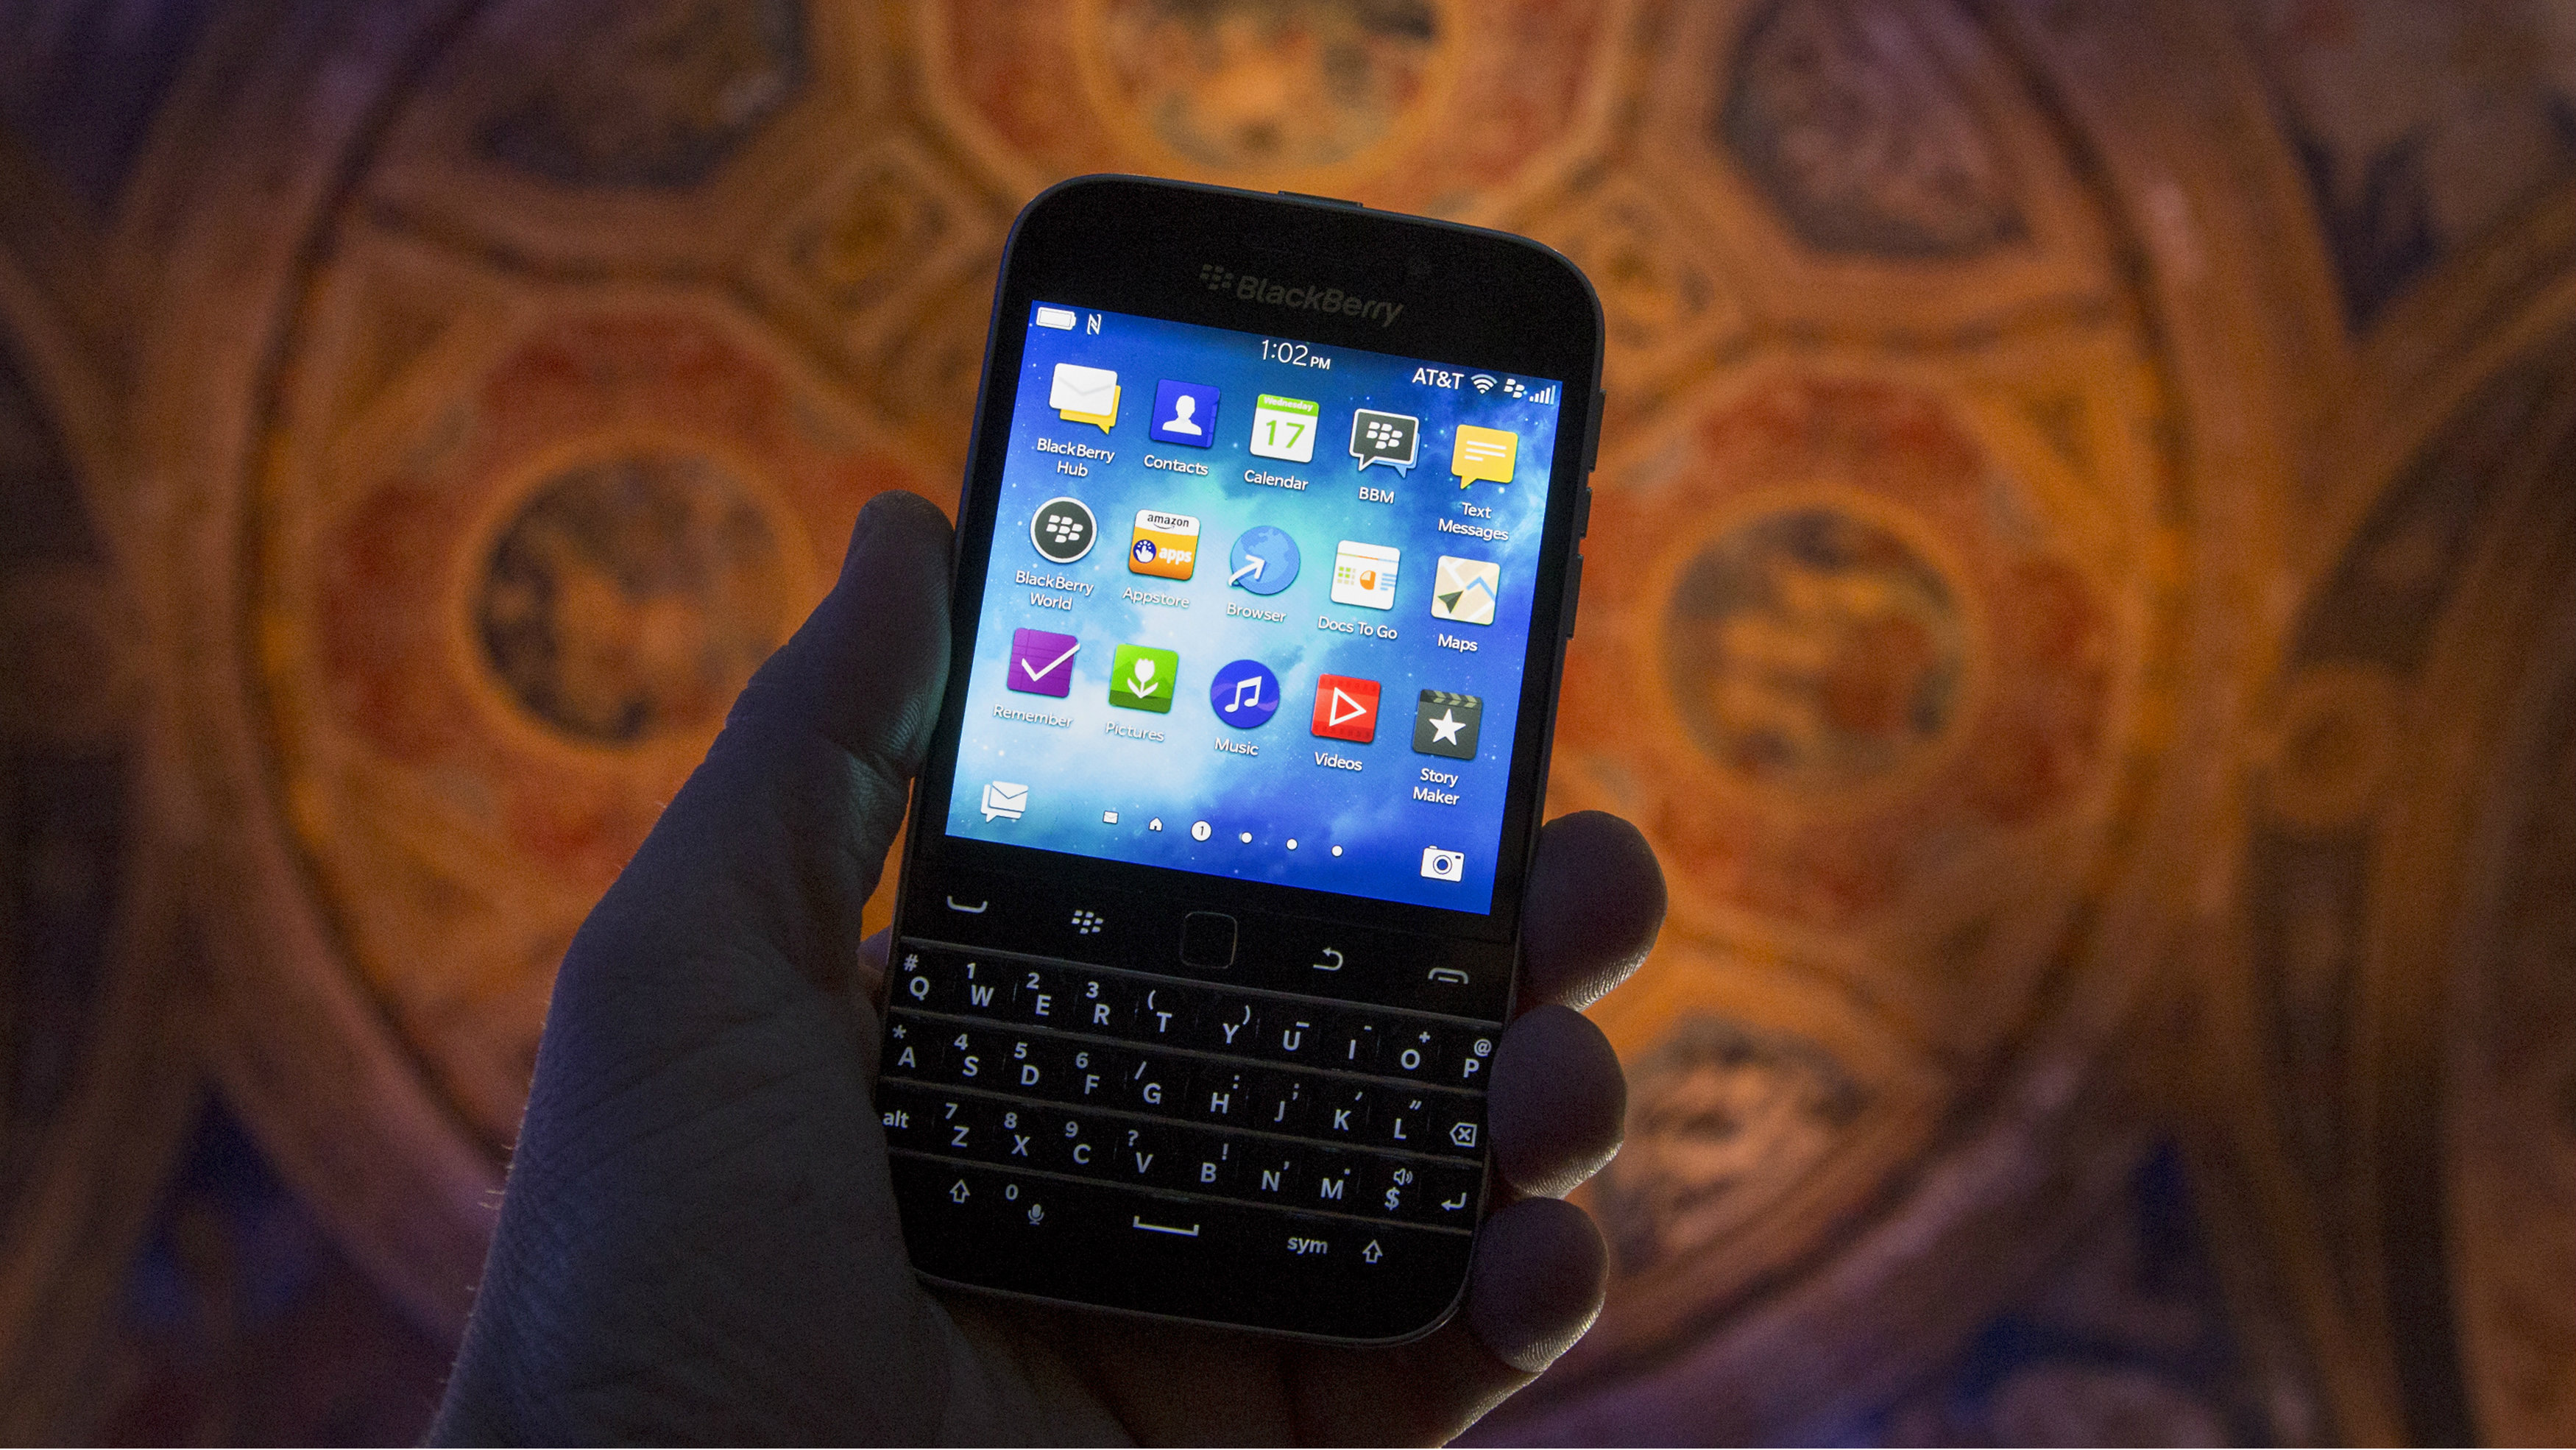 The new Blackberry Classic smartphone is shown during a display at the launch event in New York, December 17, 2014. BlackBerry Ltd launched its long-awaited Classic on Wednesday, a smartphone it hopes will help it win back market share and woo those still using older versions of its physical keyboard devices.